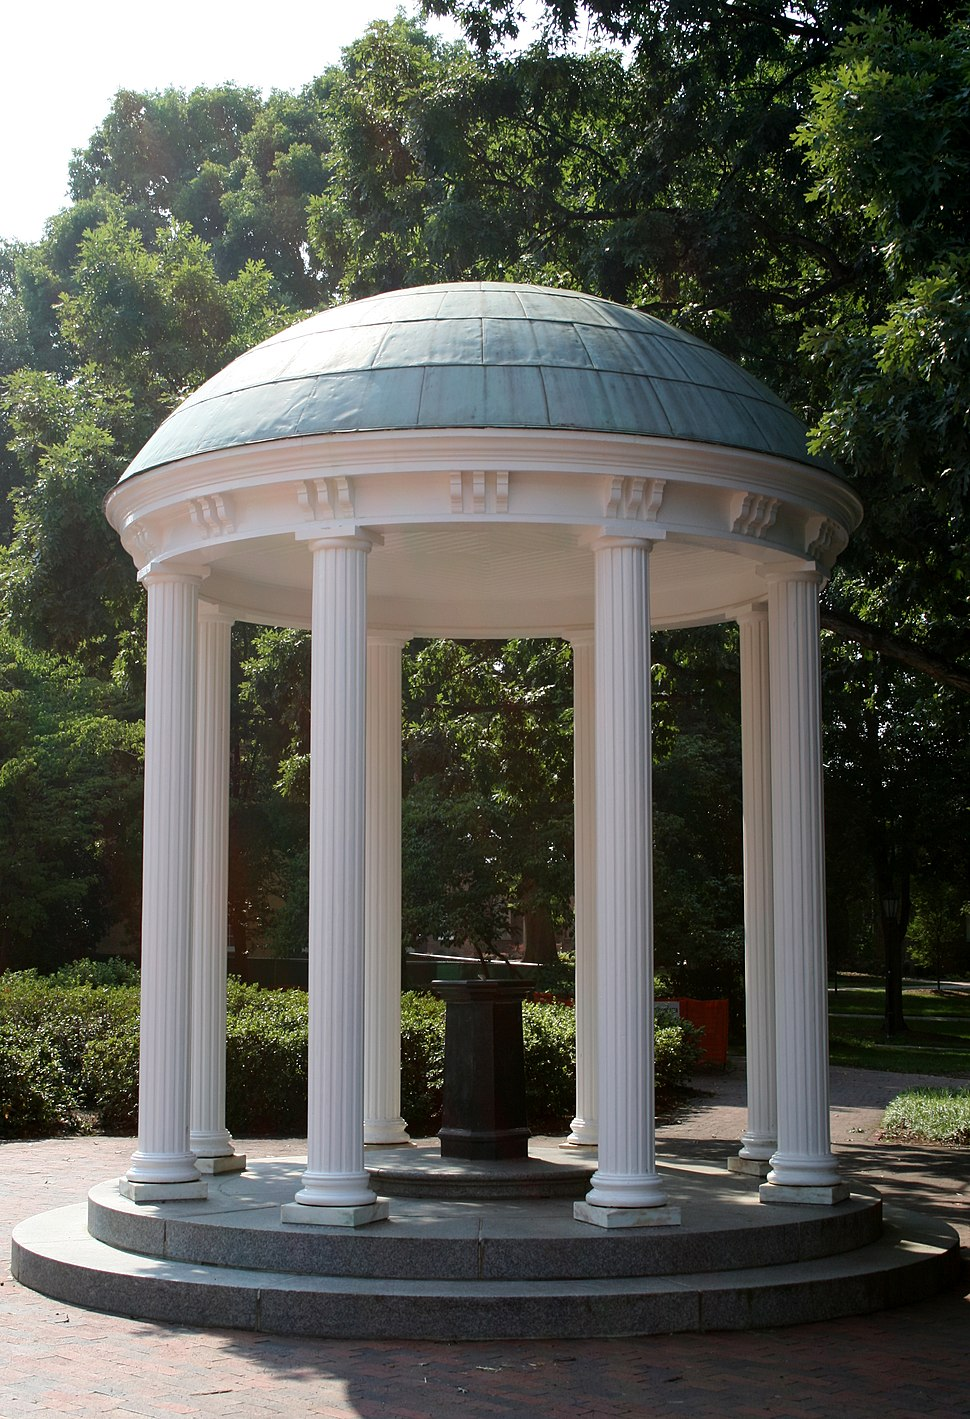 2008-07-11 UNC-CH Old Well in the sun